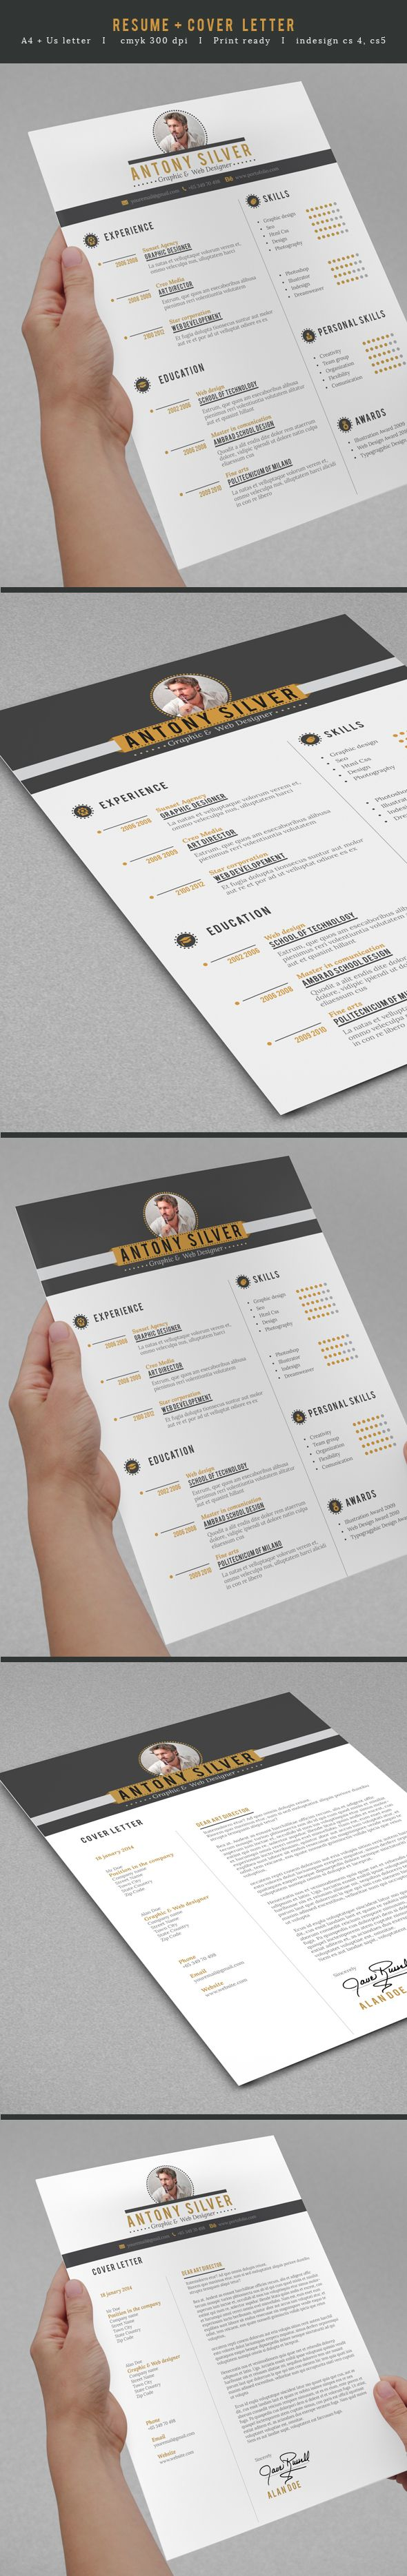 Resume design & layout